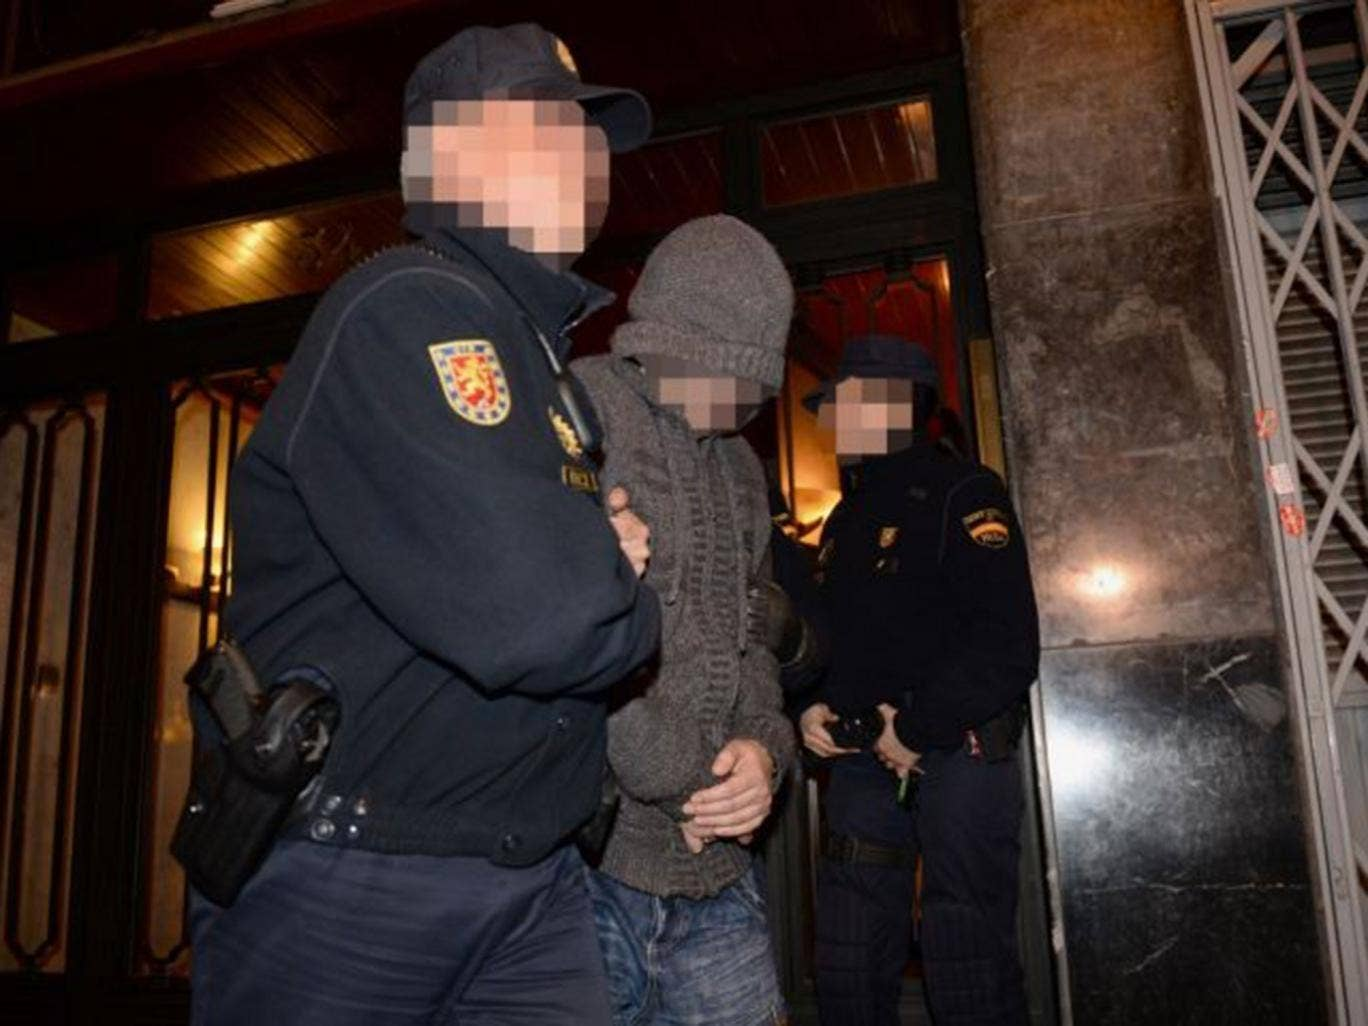 Officers from City of London Police and their Spanish counterparts from the Policia Nacional remove a suspect after raiding a business property in Barcelona